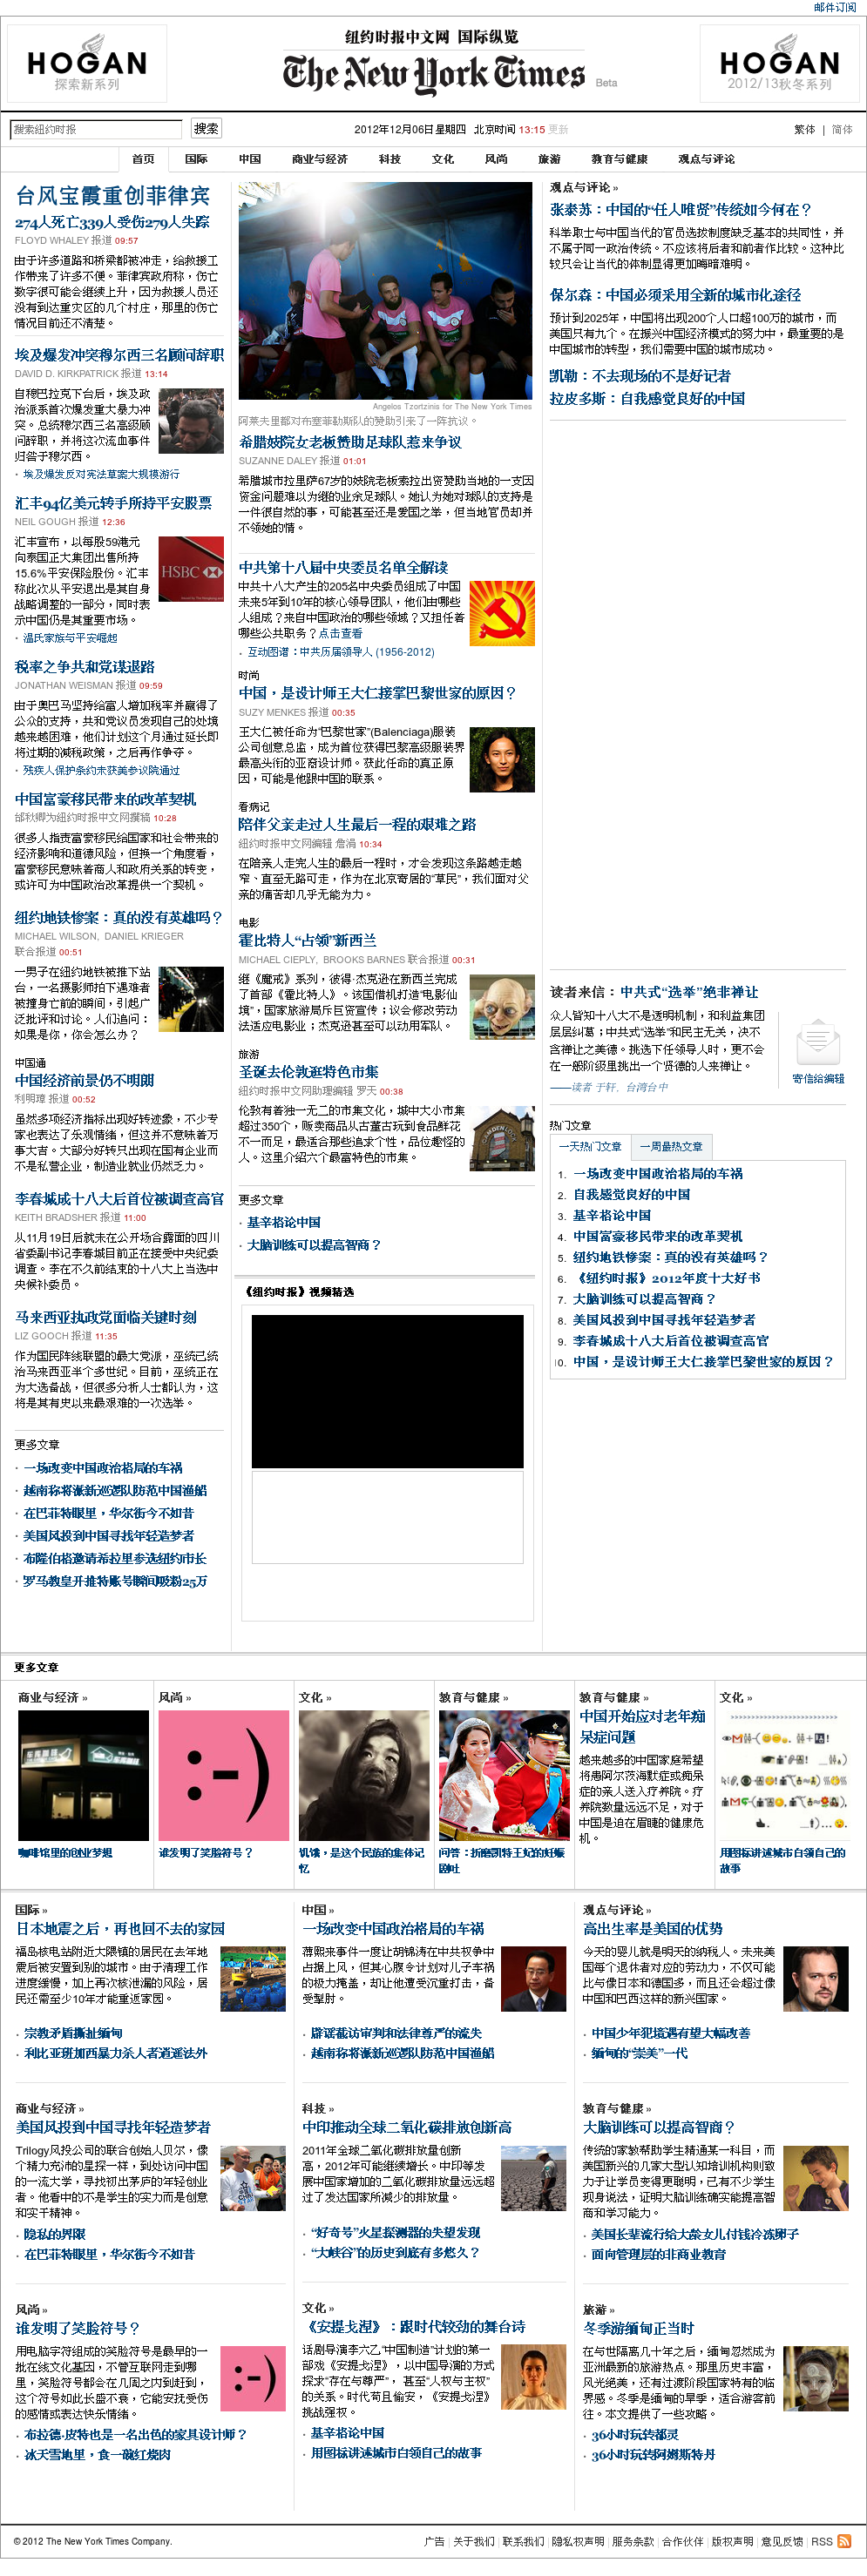 The New York Times (Chinese) at Thursday Dec. 6, 2012, 5:35 a.m. UTC